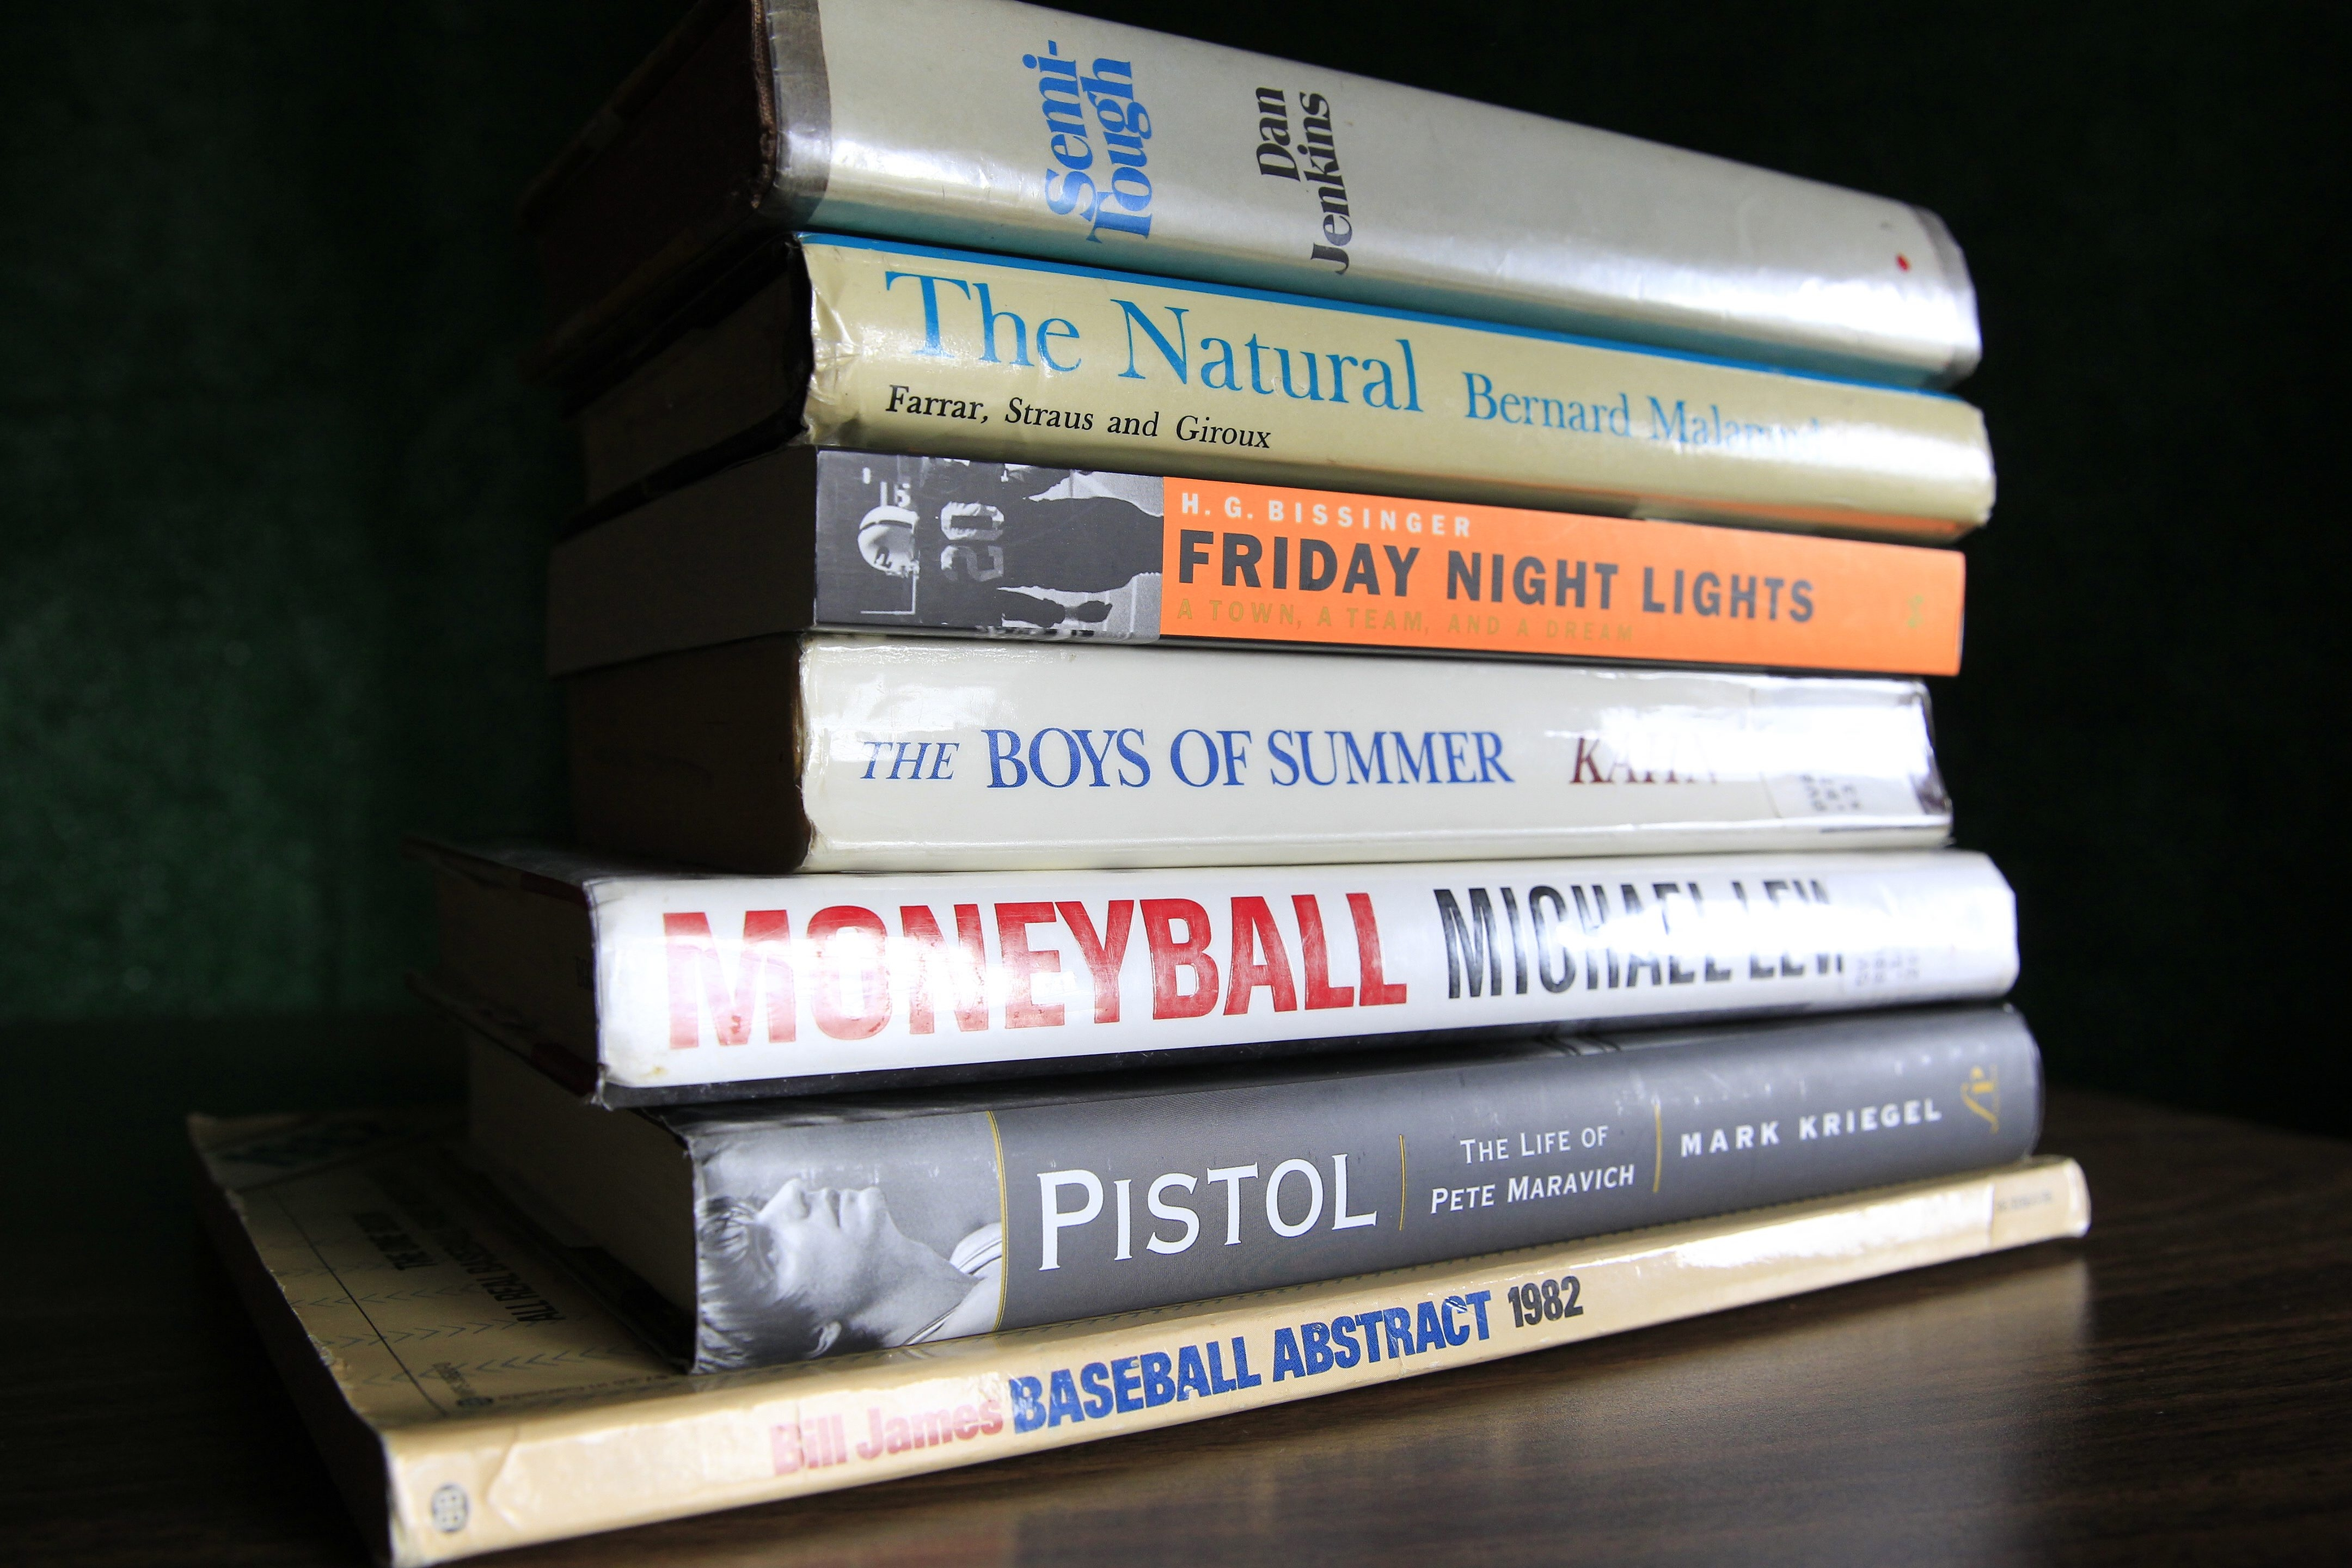 Sports media types have come up with a wide-ranging list of sports books that have inspired them in one way or anothers.